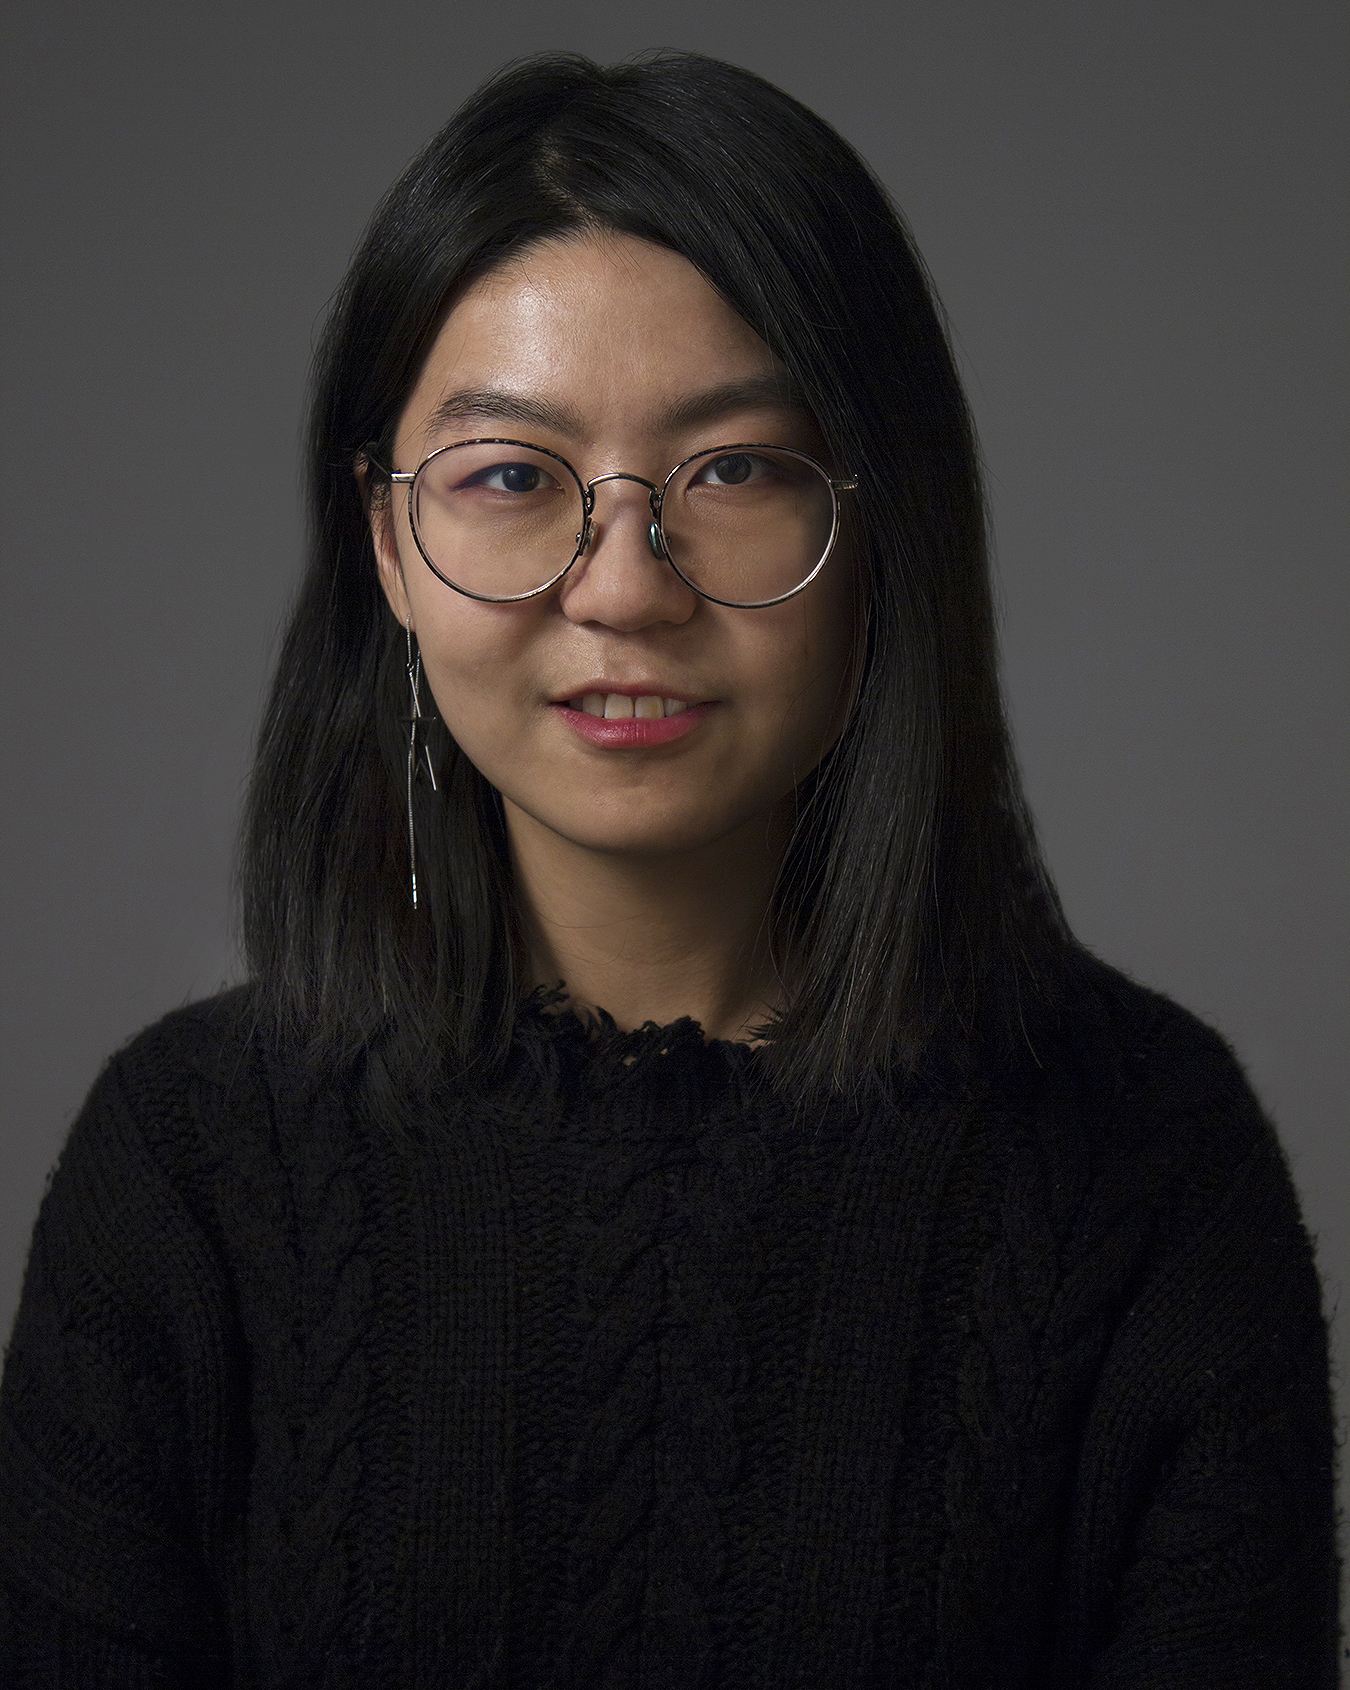 Portrait of Wenjia Guo by Eileen Ko, Copyright 2018